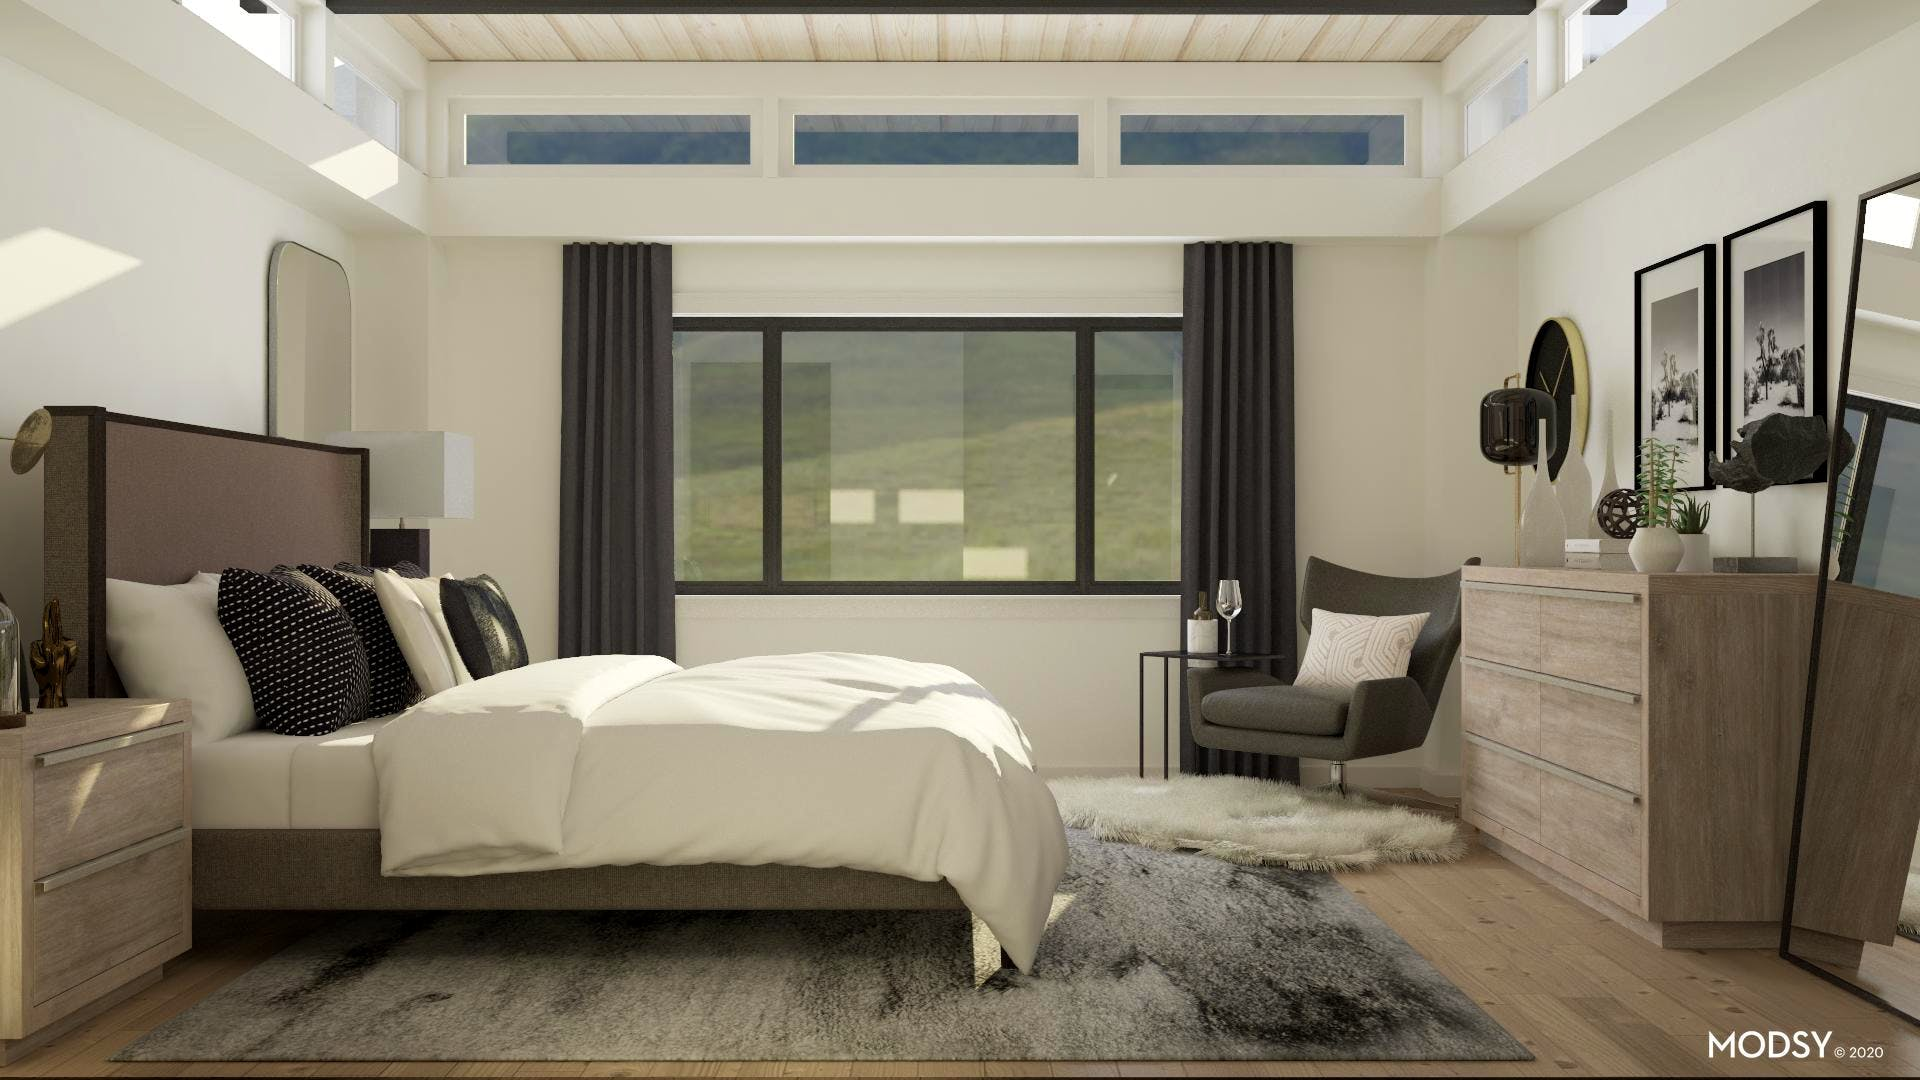 An Overall View Of A Modern Bedroom